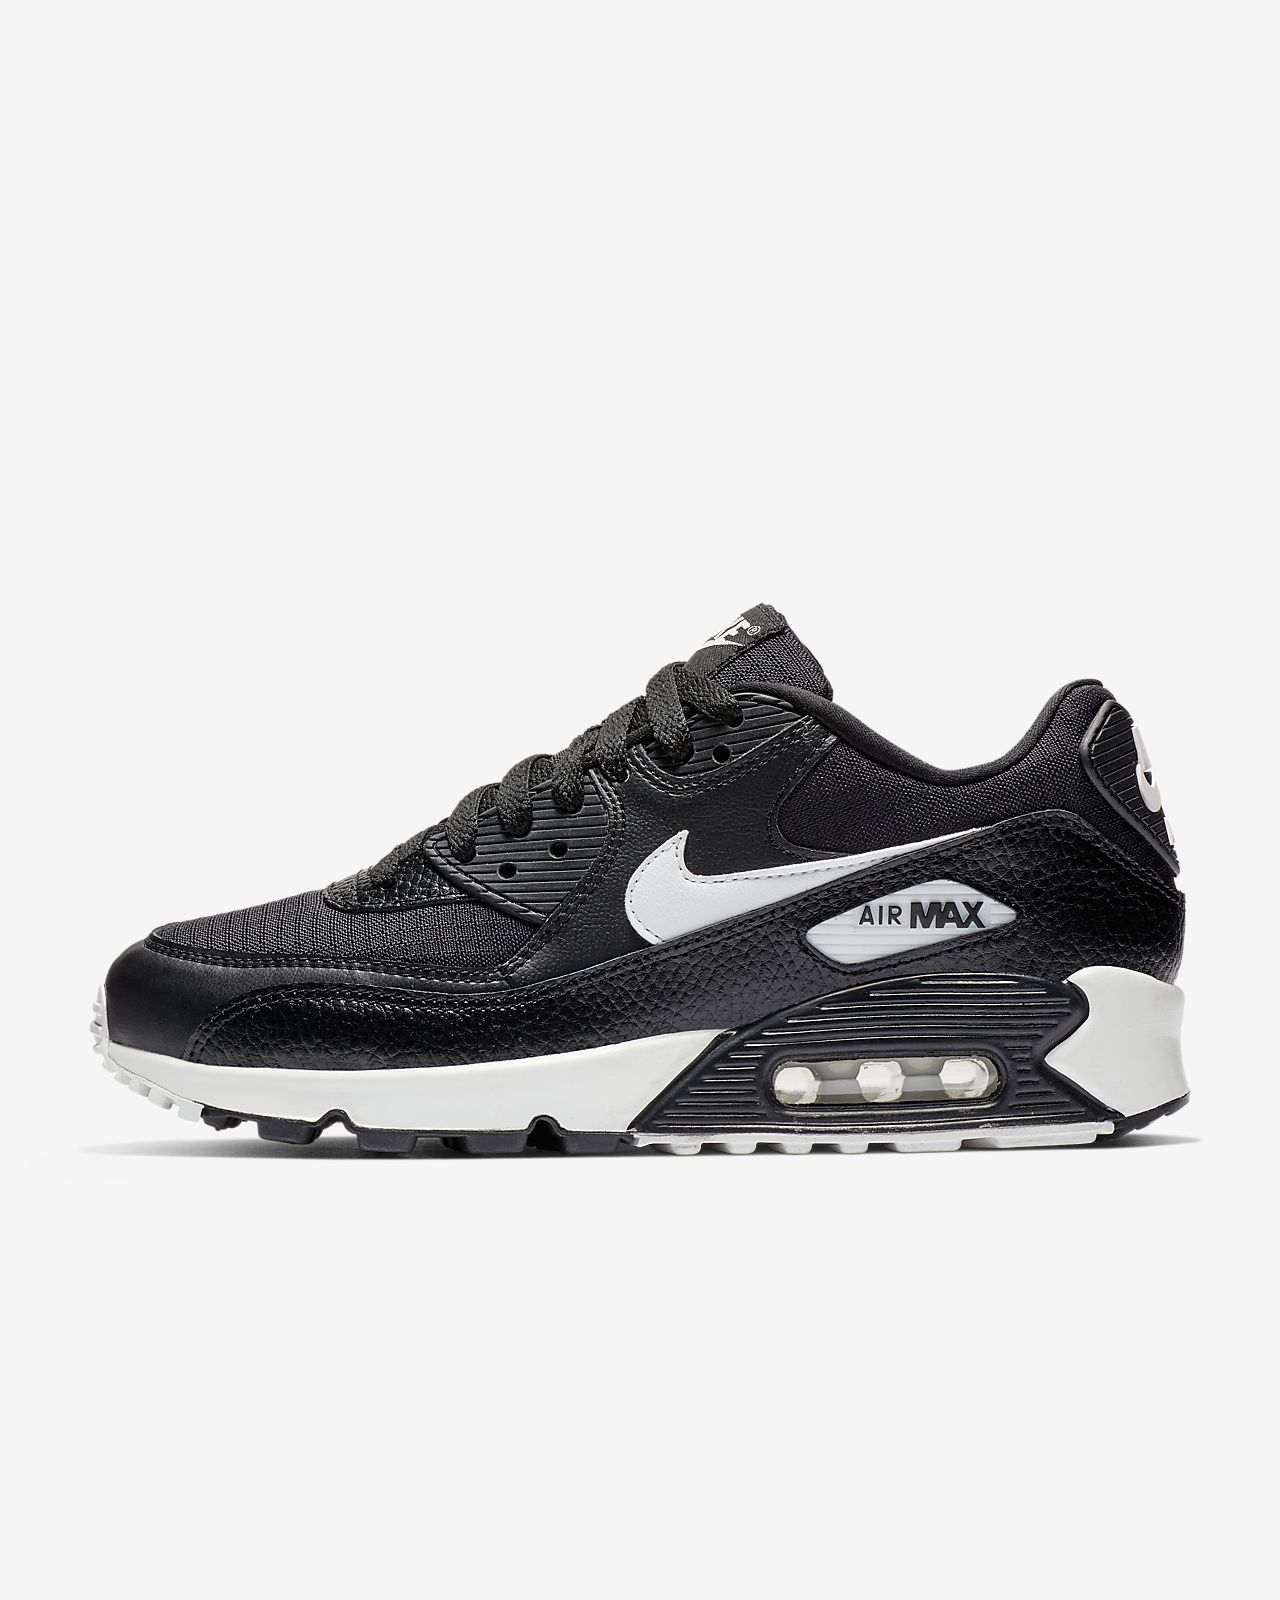 55056c237a6 Nike Air Max 90 Women s Shoe. Nike.com GB